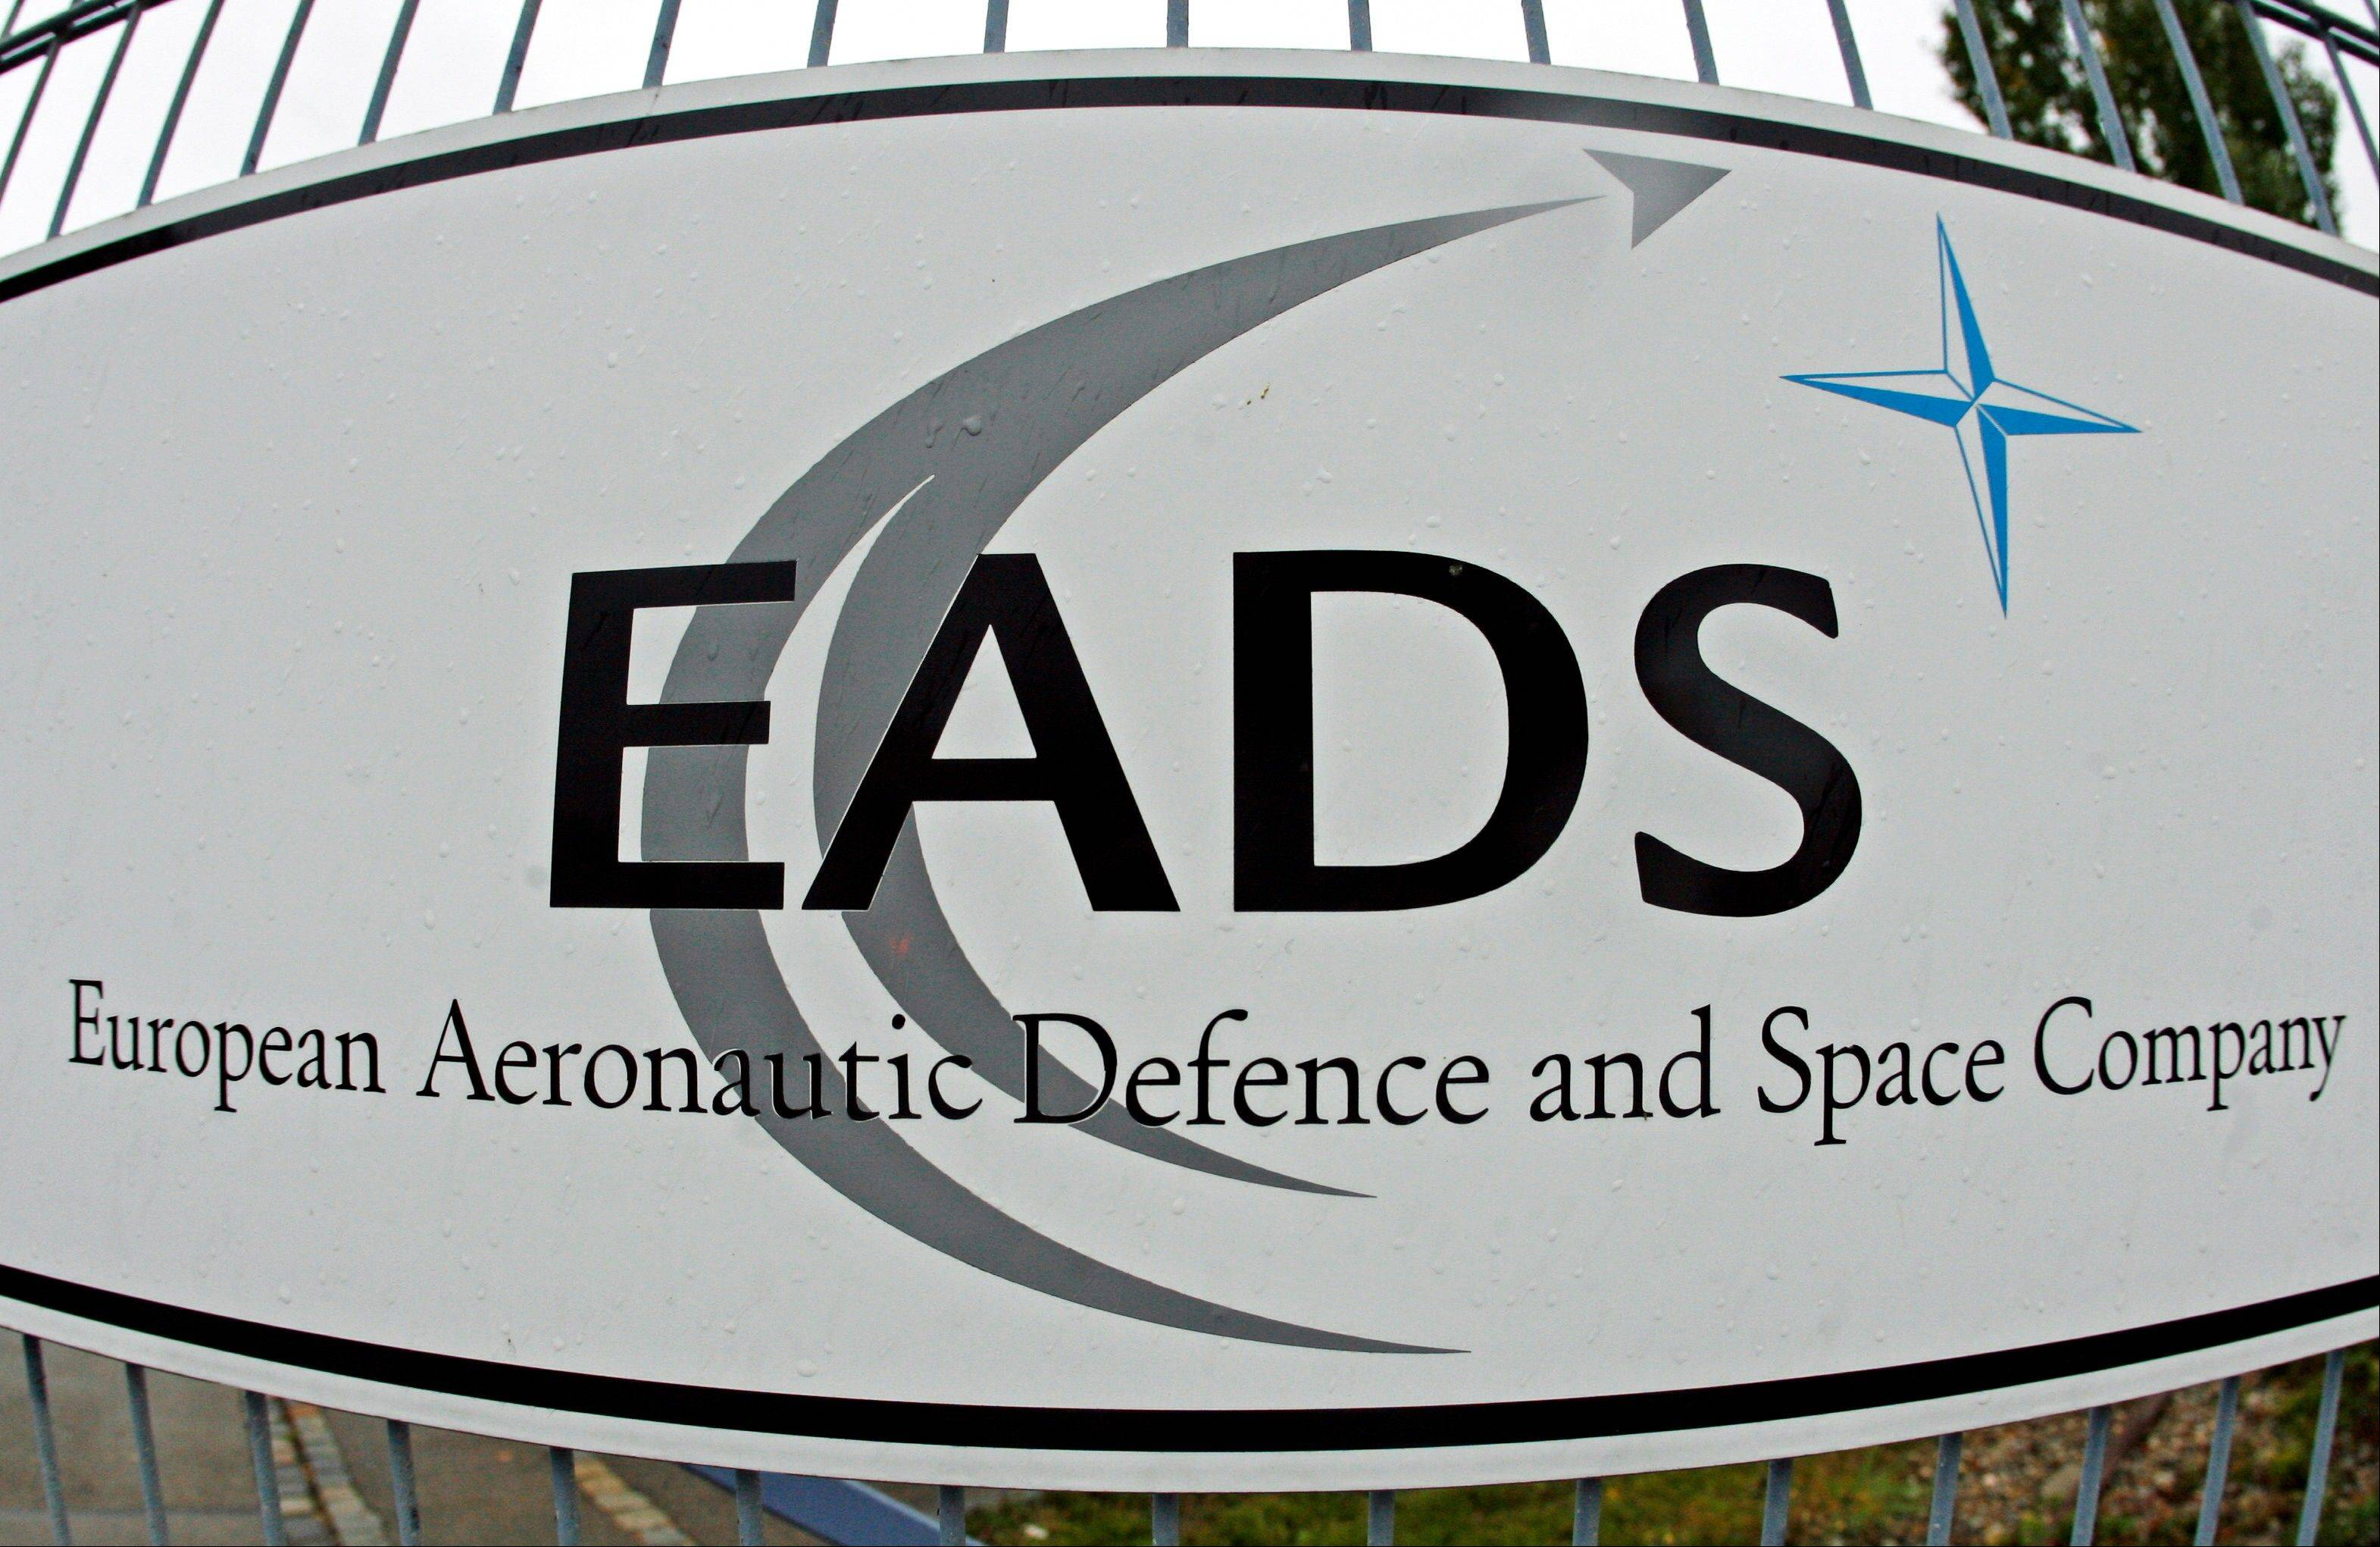 British defense contractor BAE Systems PLC and its European counterpart EADS NV on Wednesday Oct 10, 2012 abandoned a proposed merger that would have created a global defense and aerospace giant.